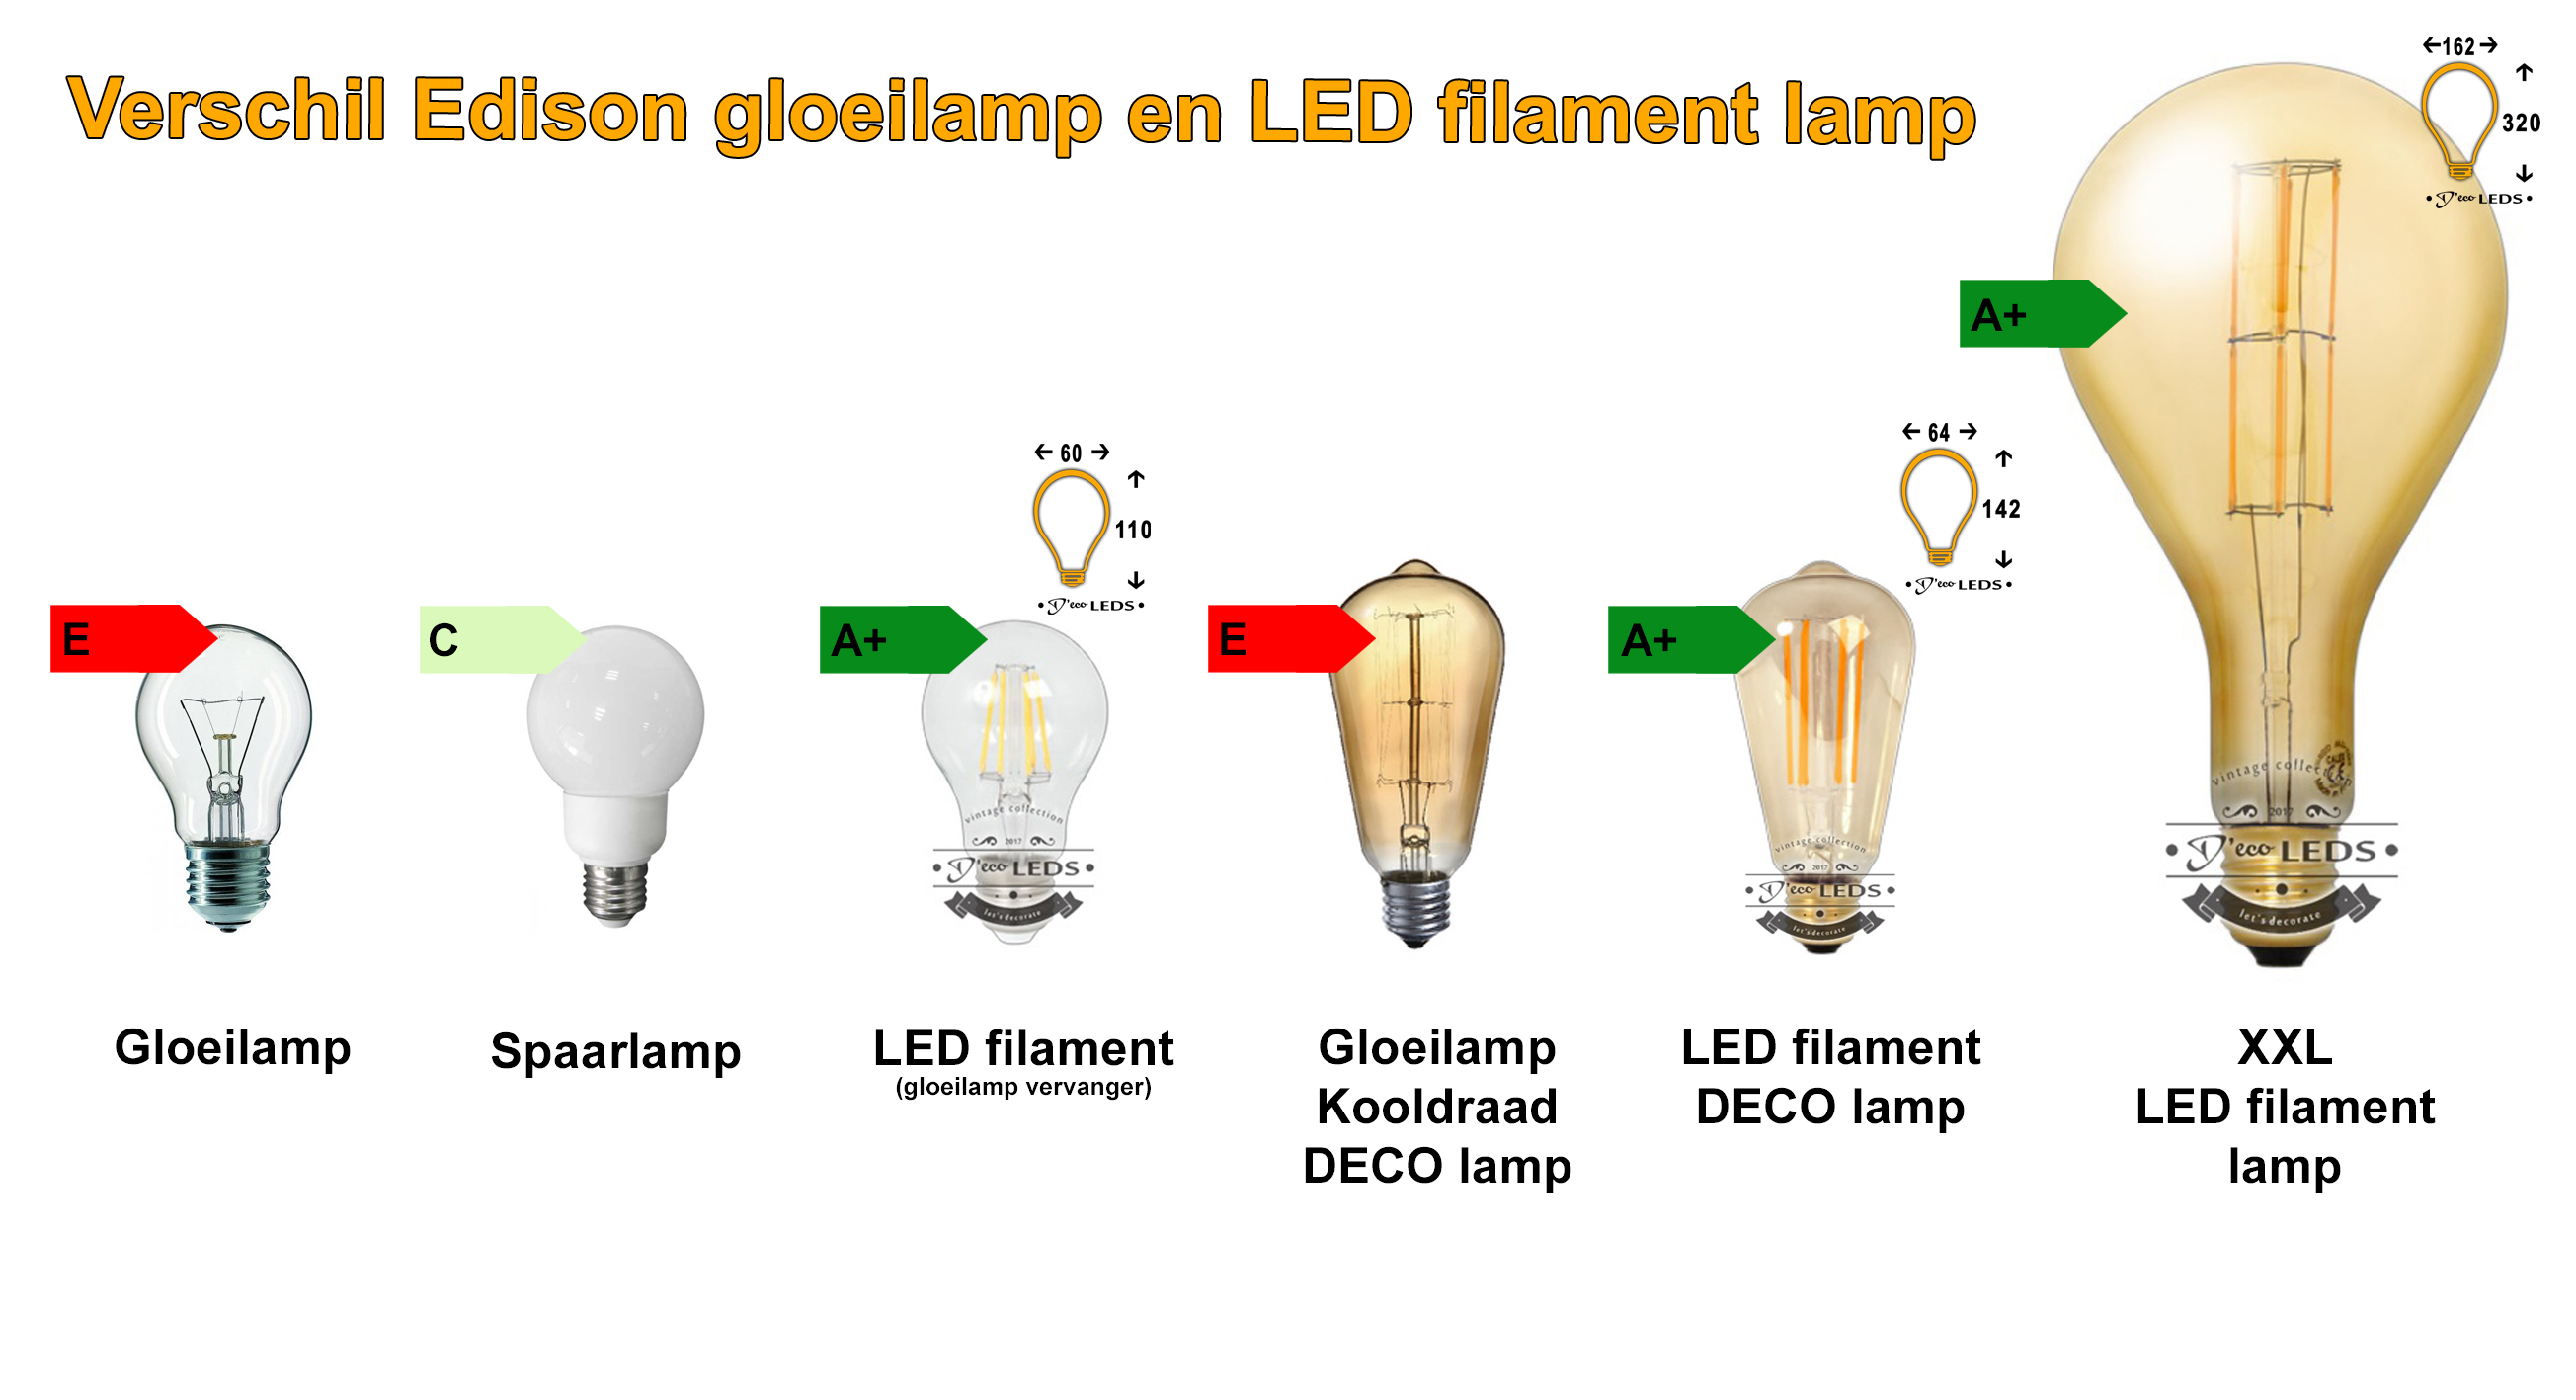 wat is een LED fialment lamp. (uitleg LED LAMPEN)